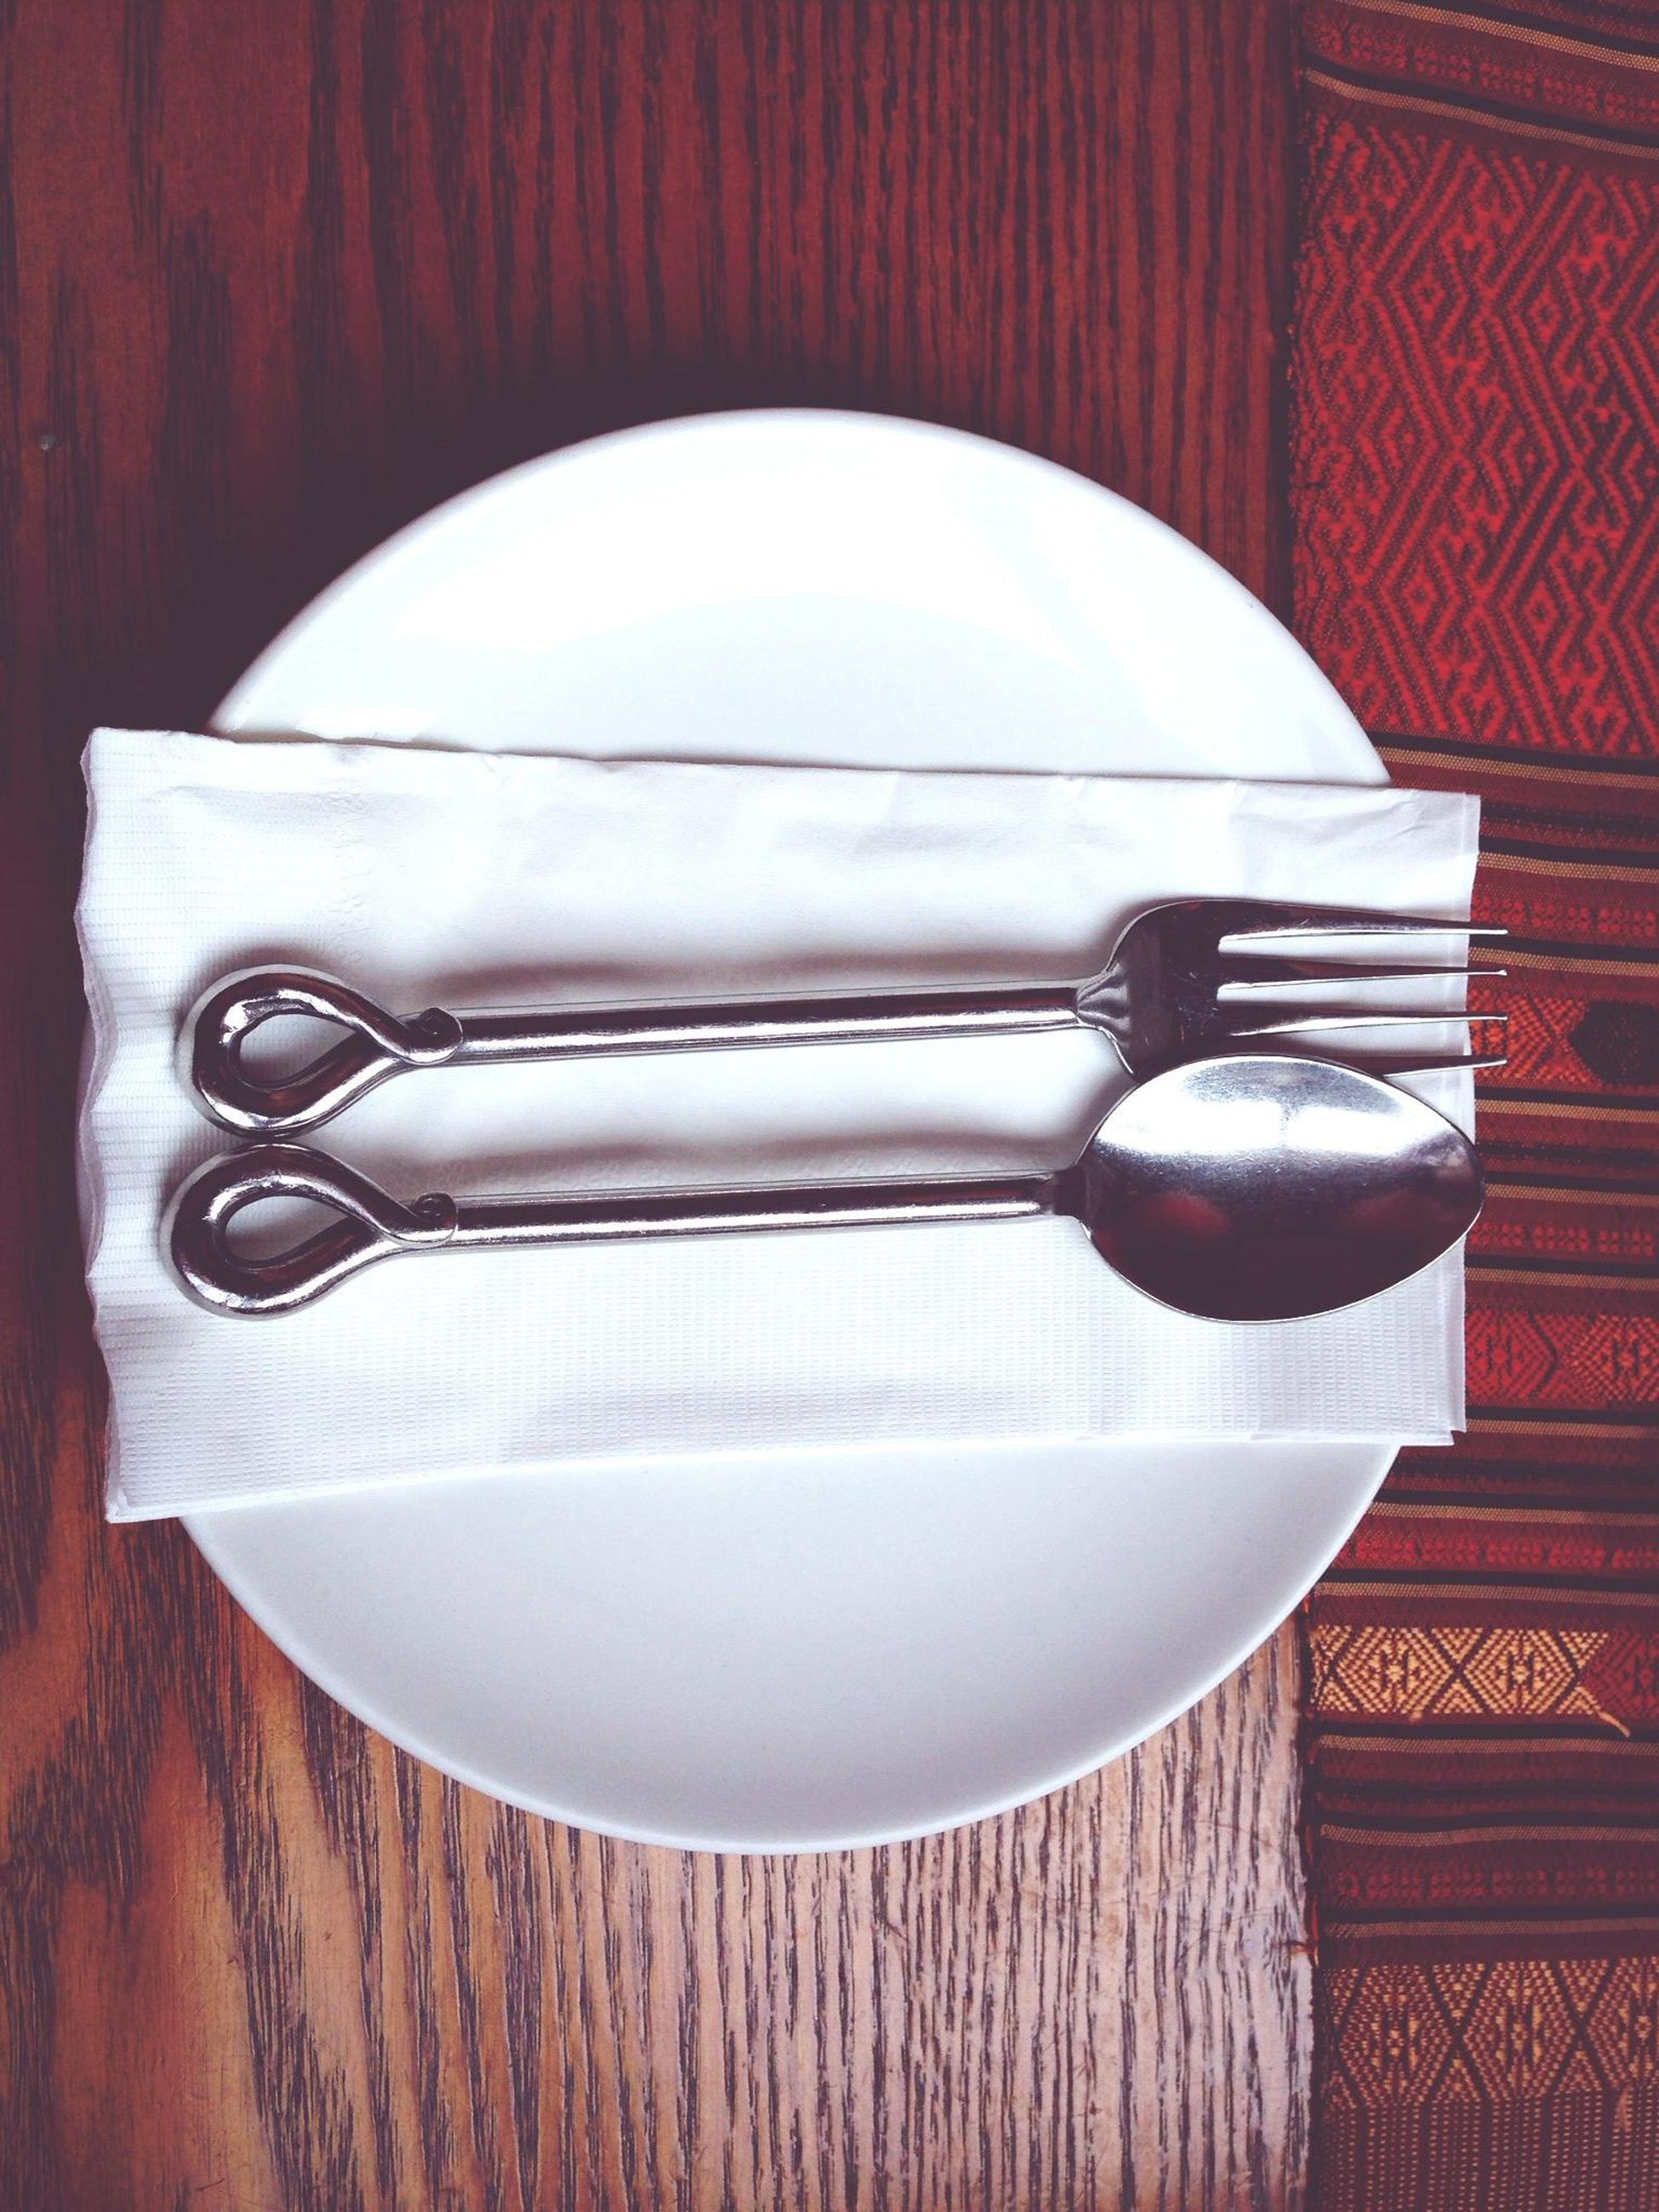 indoors, still life, table, close-up, high angle view, spoon, fork, directly above, food and drink, no people, white color, wood - material, studio shot, single object, variation, two objects, table knife, metal, man made object, plate